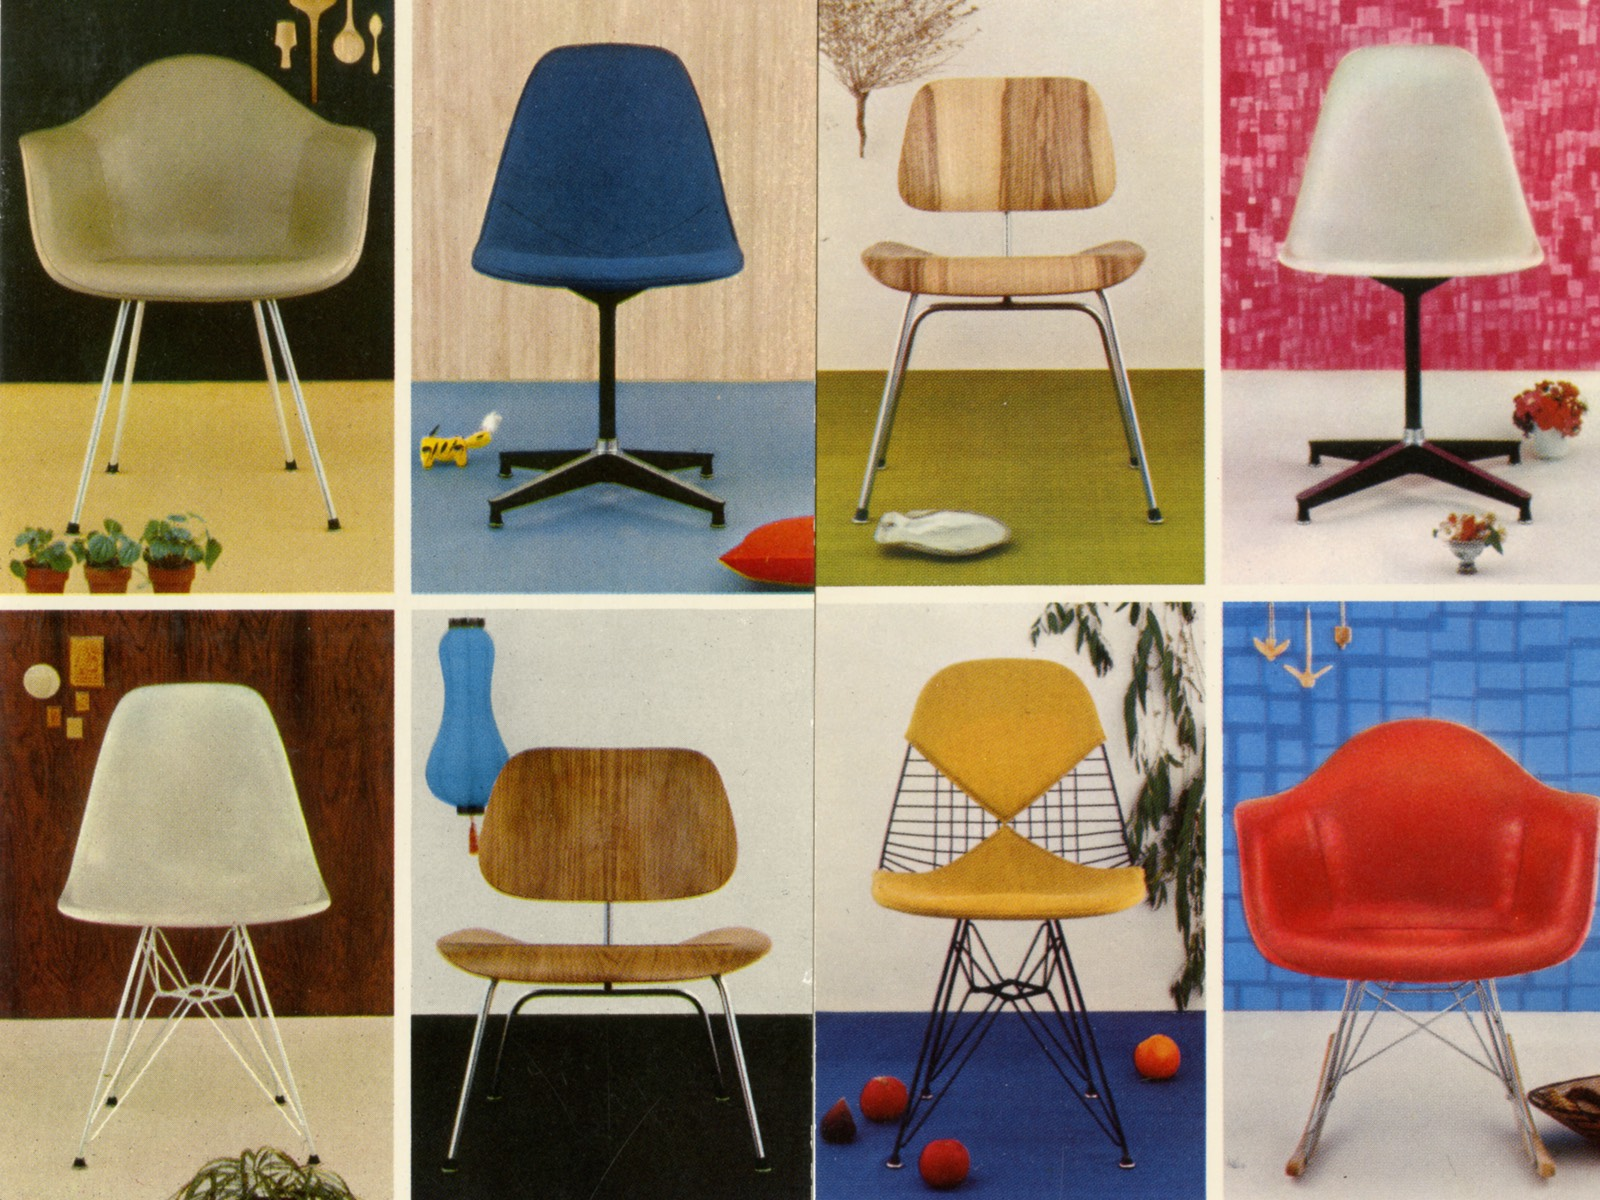 Historical images of eight chairs designed by Charles and Ray Eames.